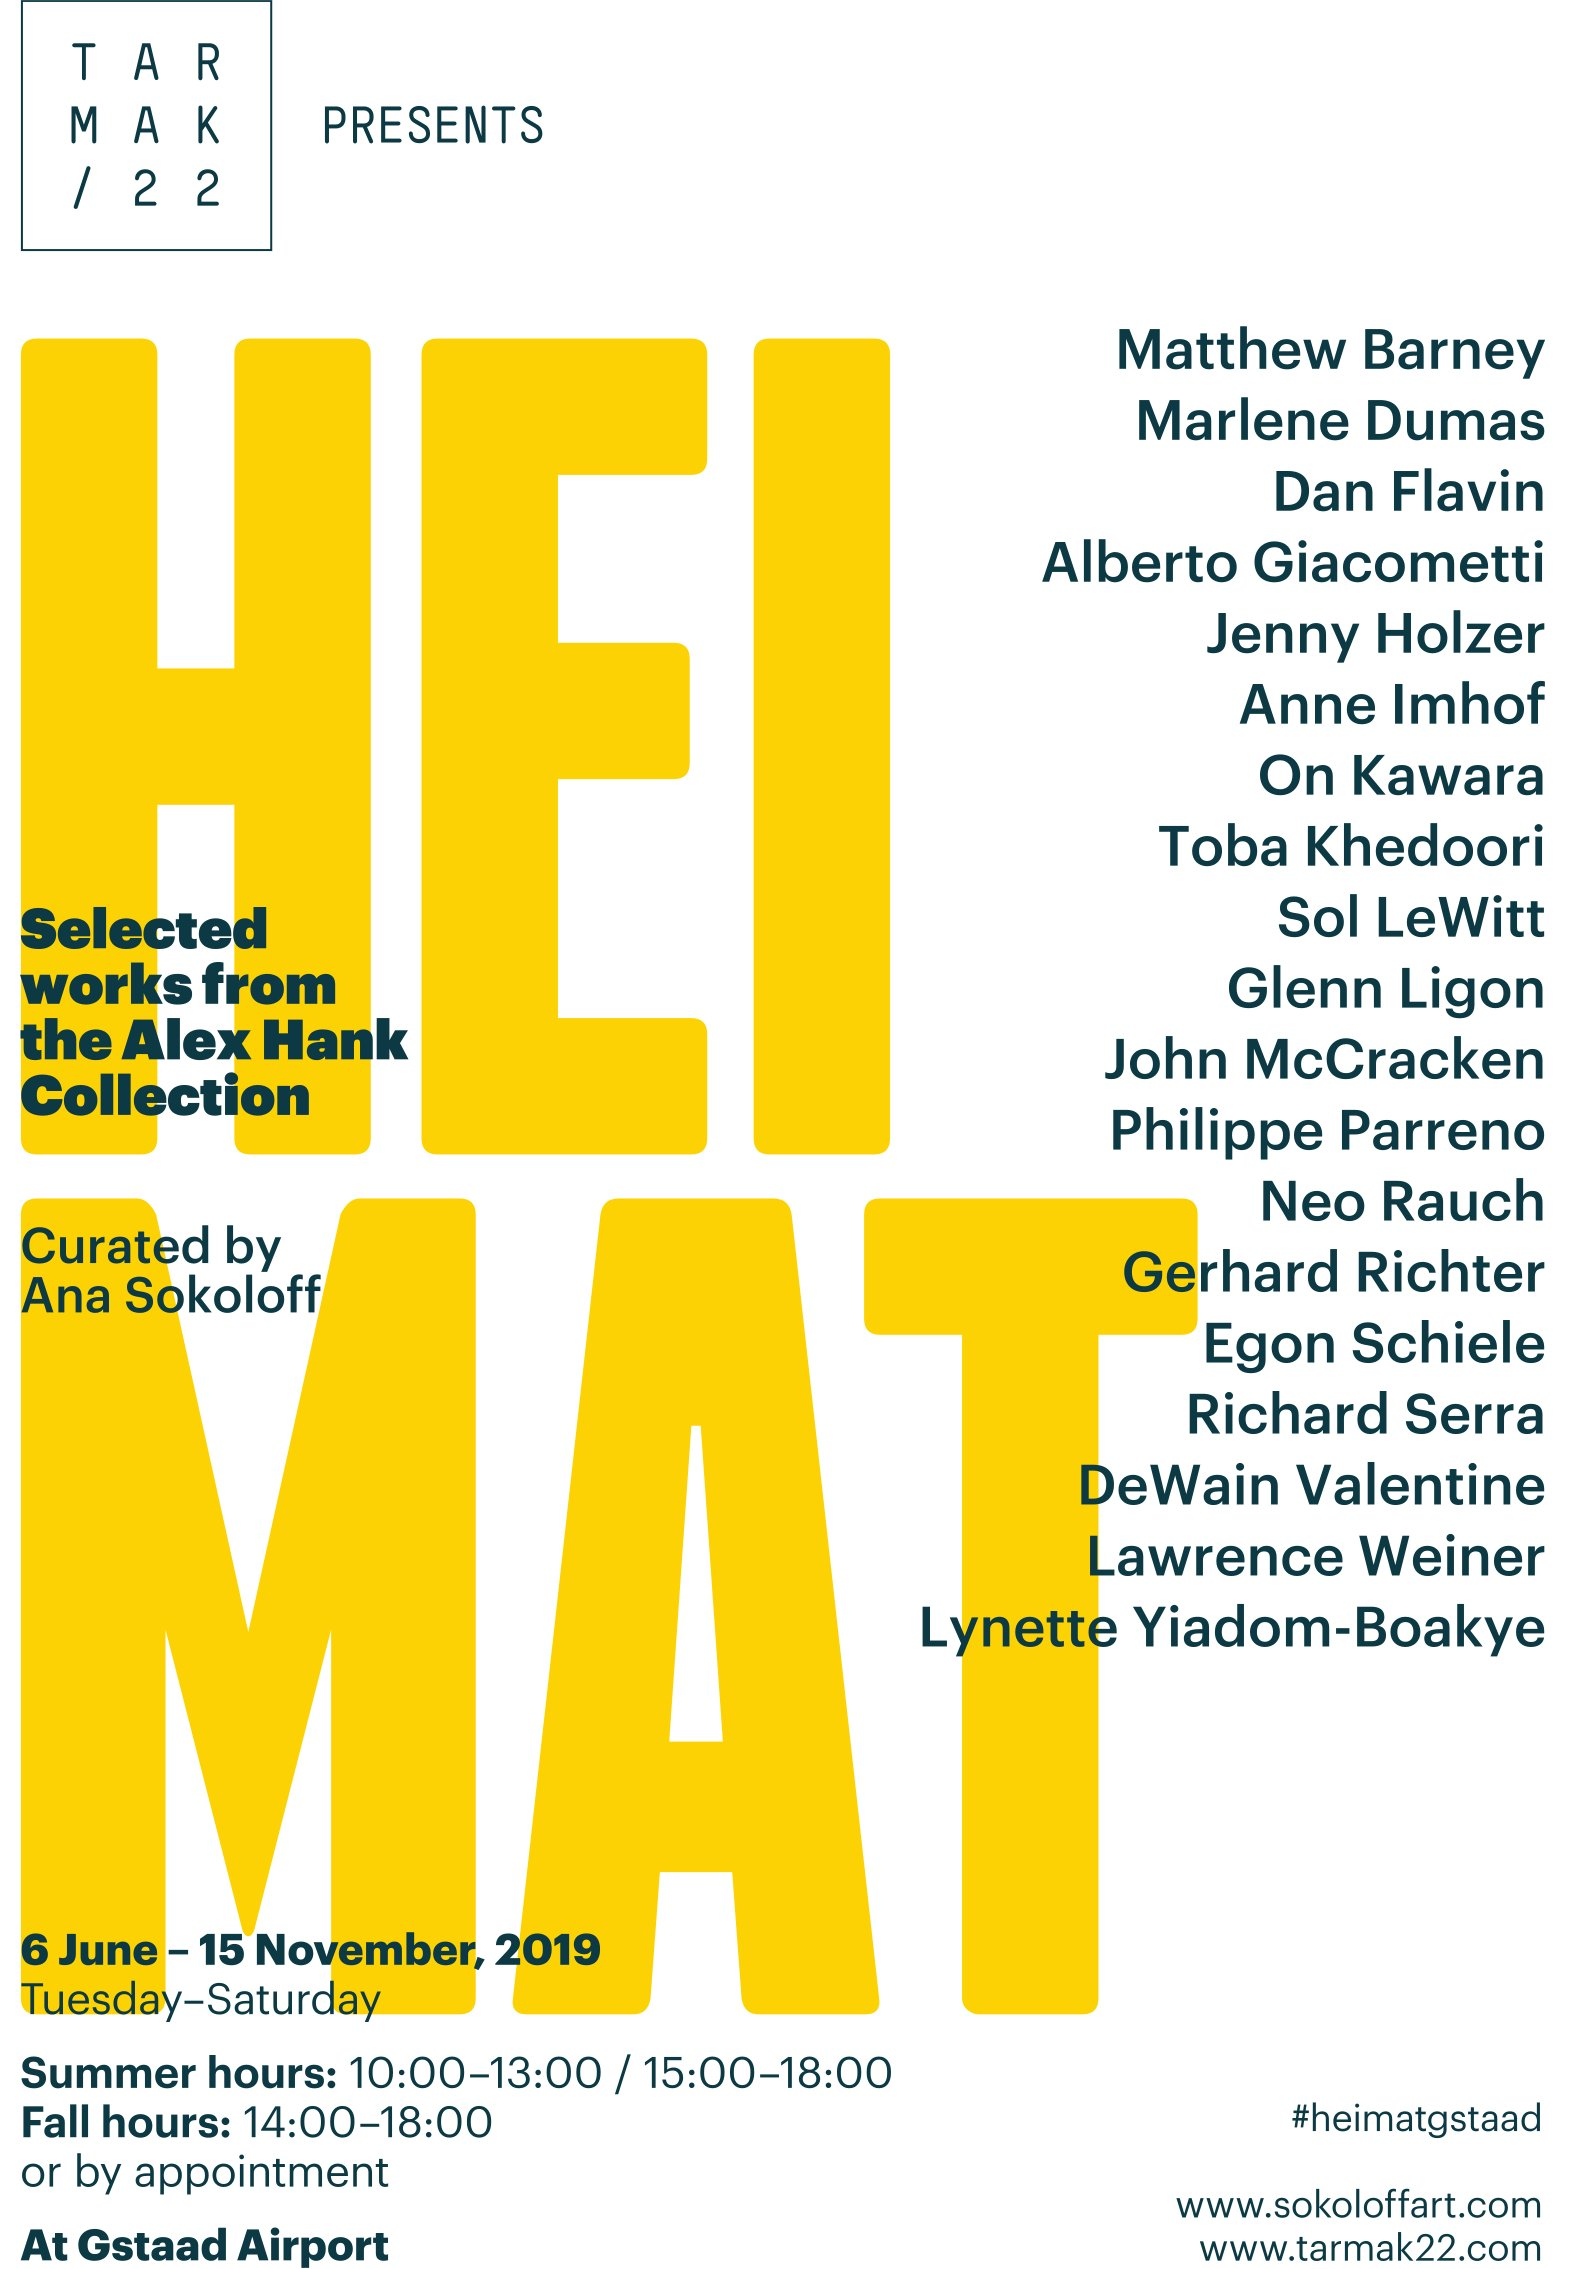 HEIMAT - Selected works from the Alex HankCollection, up to 15 November, at Gstaad Airport